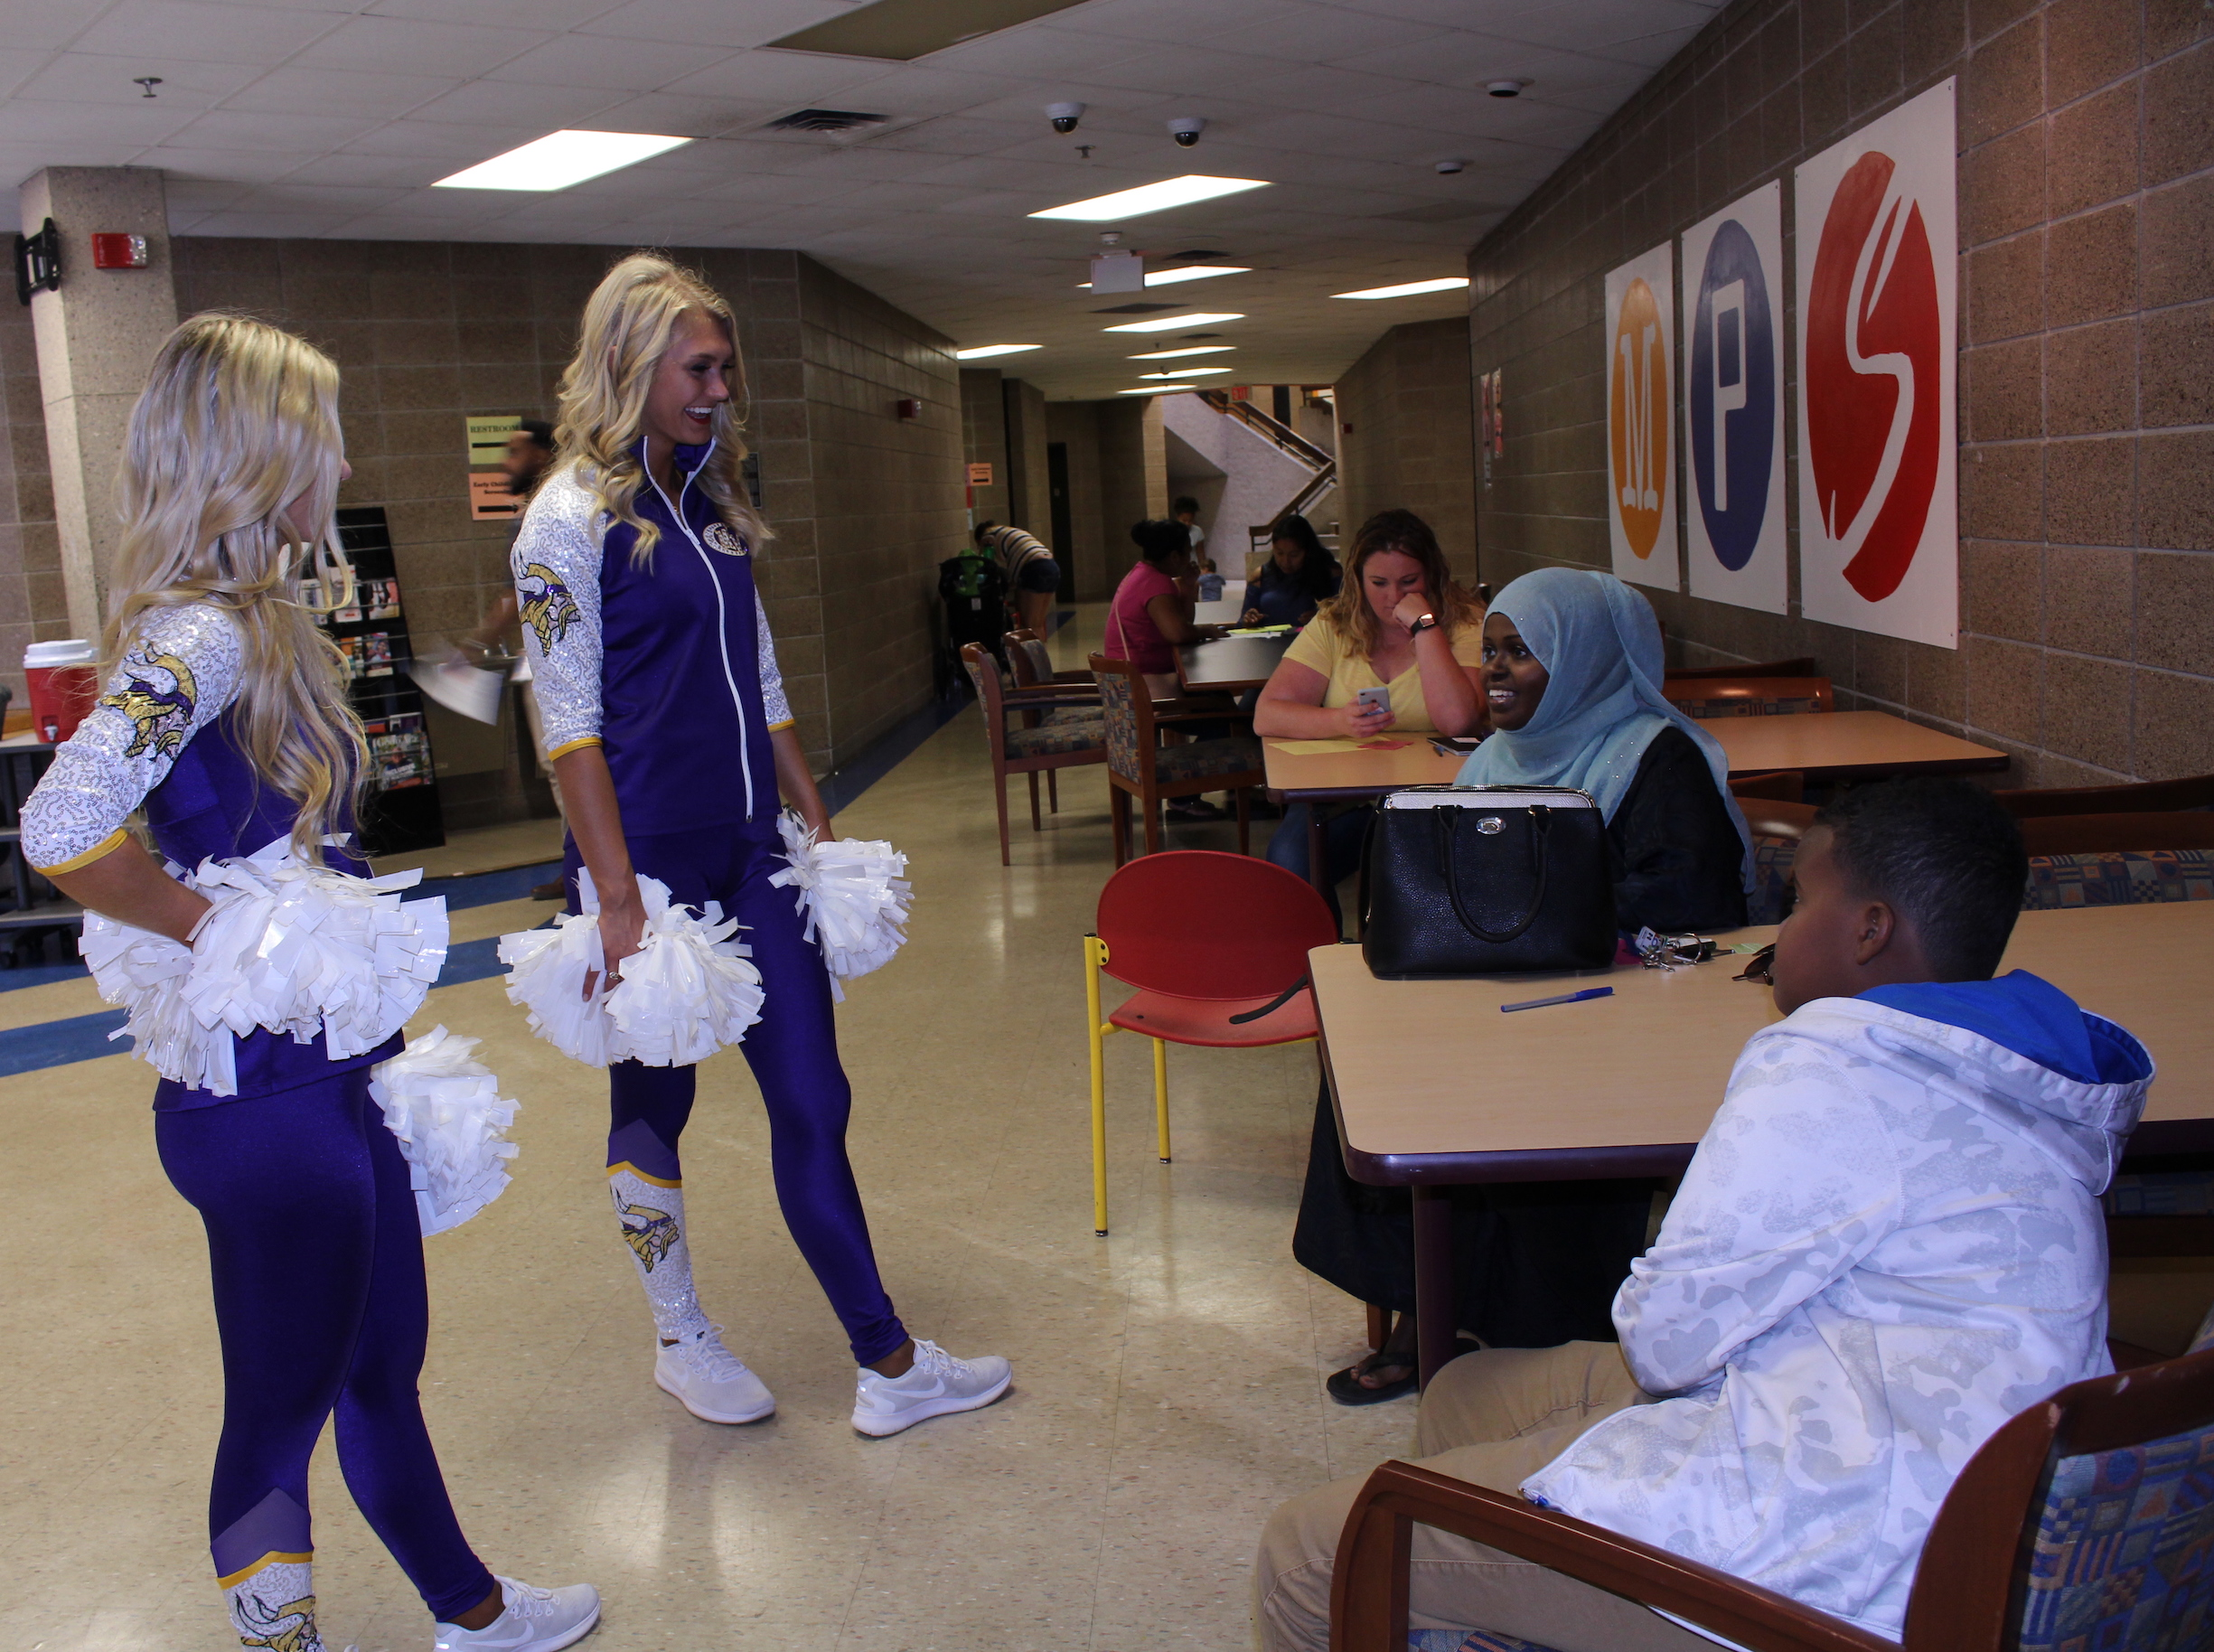 Minnesota Vikings cheerleaders Leah (center) and Meghan (left) talk with Fawsiya Maow and her son Ismail Abdulqadir at the Minneapolis Public Schools' New Families Center on Wednesday.